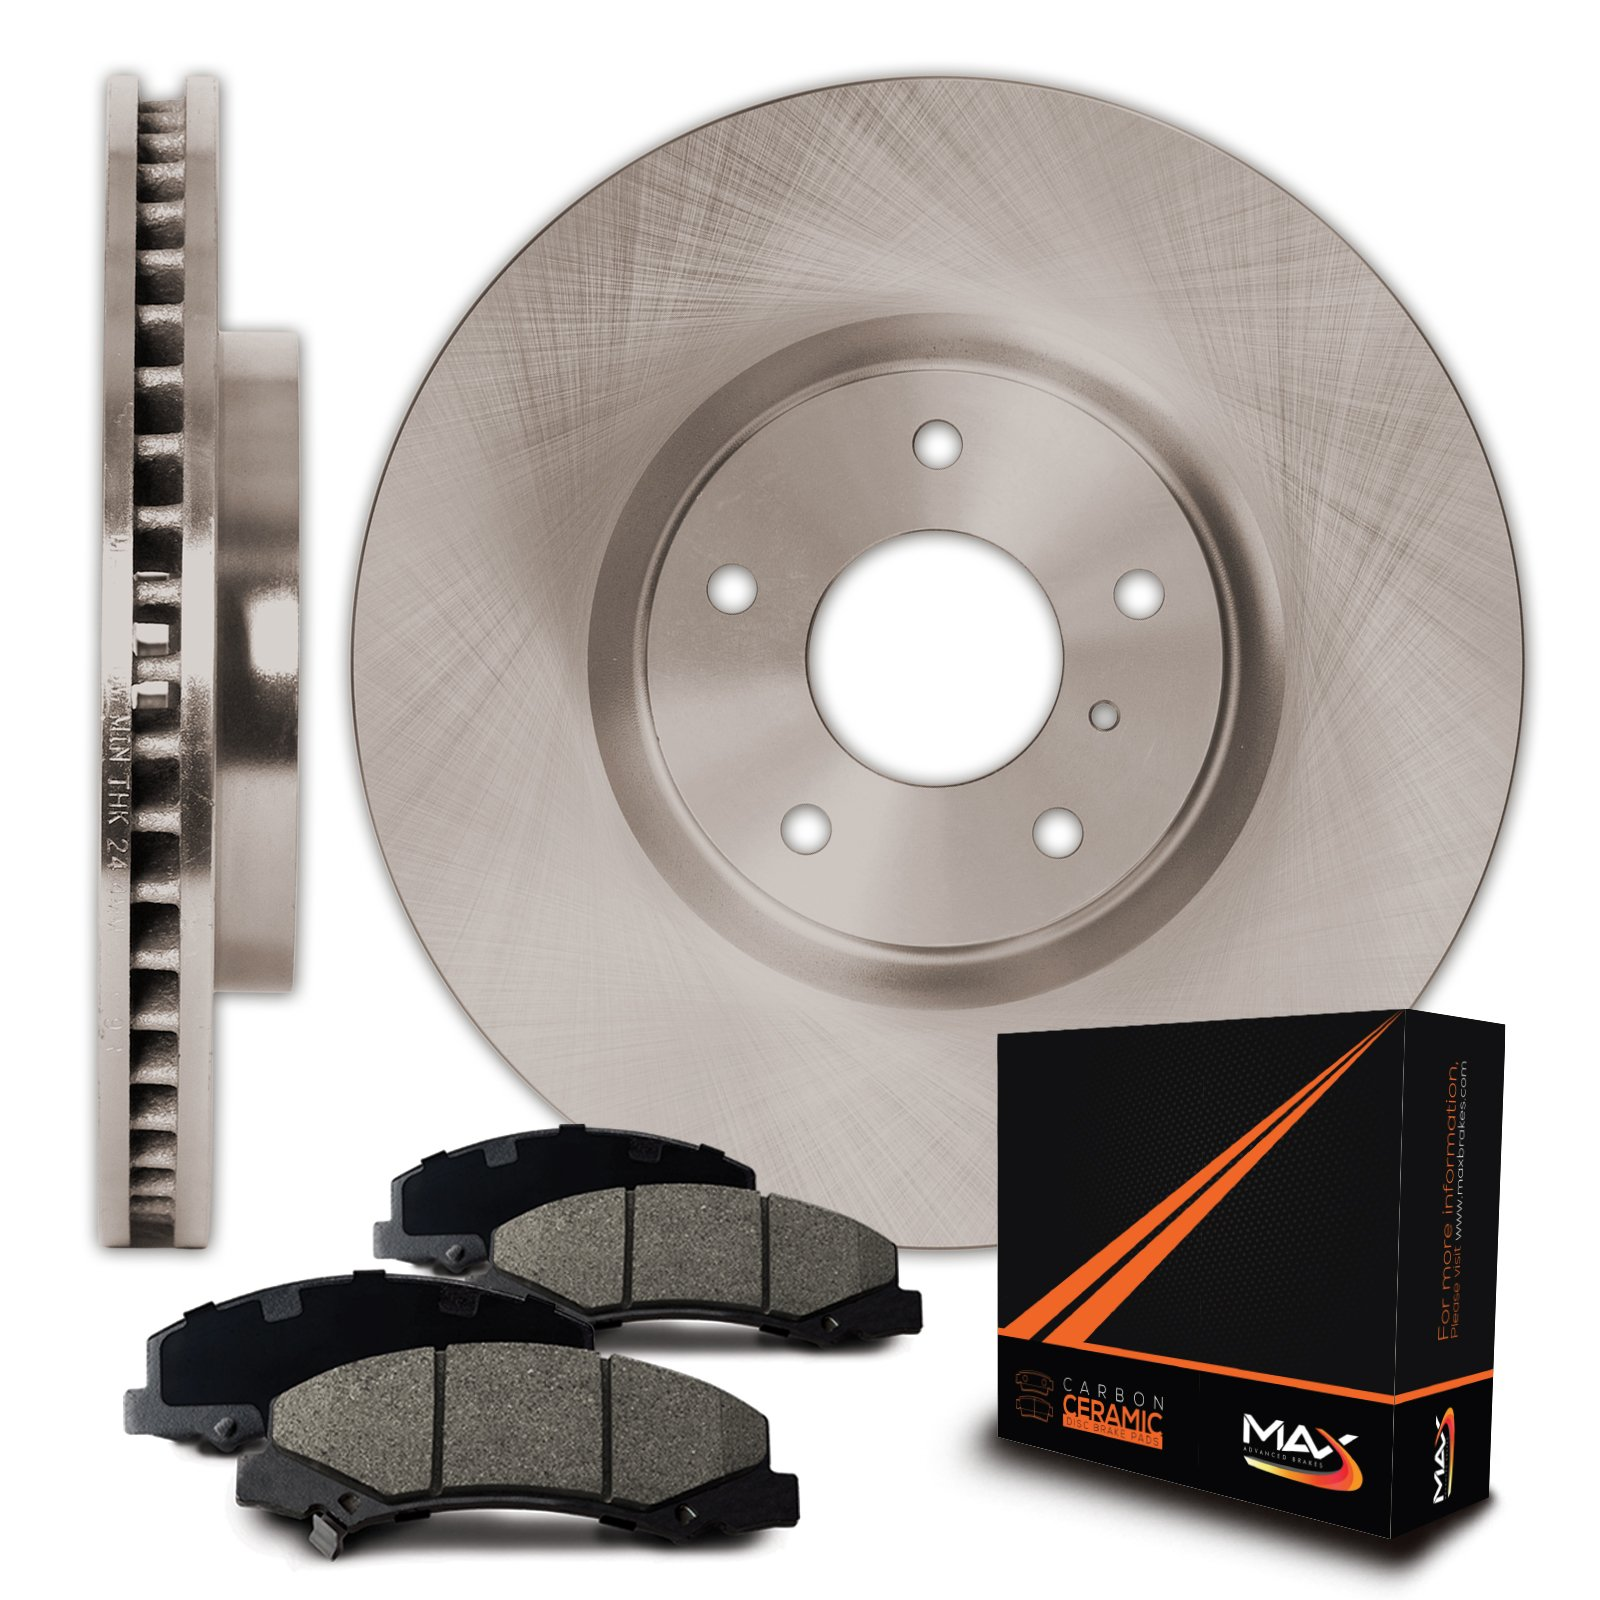 Max Brakes Front OE Series Rotors w/Ceramic Pads Premium Brake Kit KT094441 | Fits: 2003 03 2004 04 2005 05 Chevy Venture FWD Models